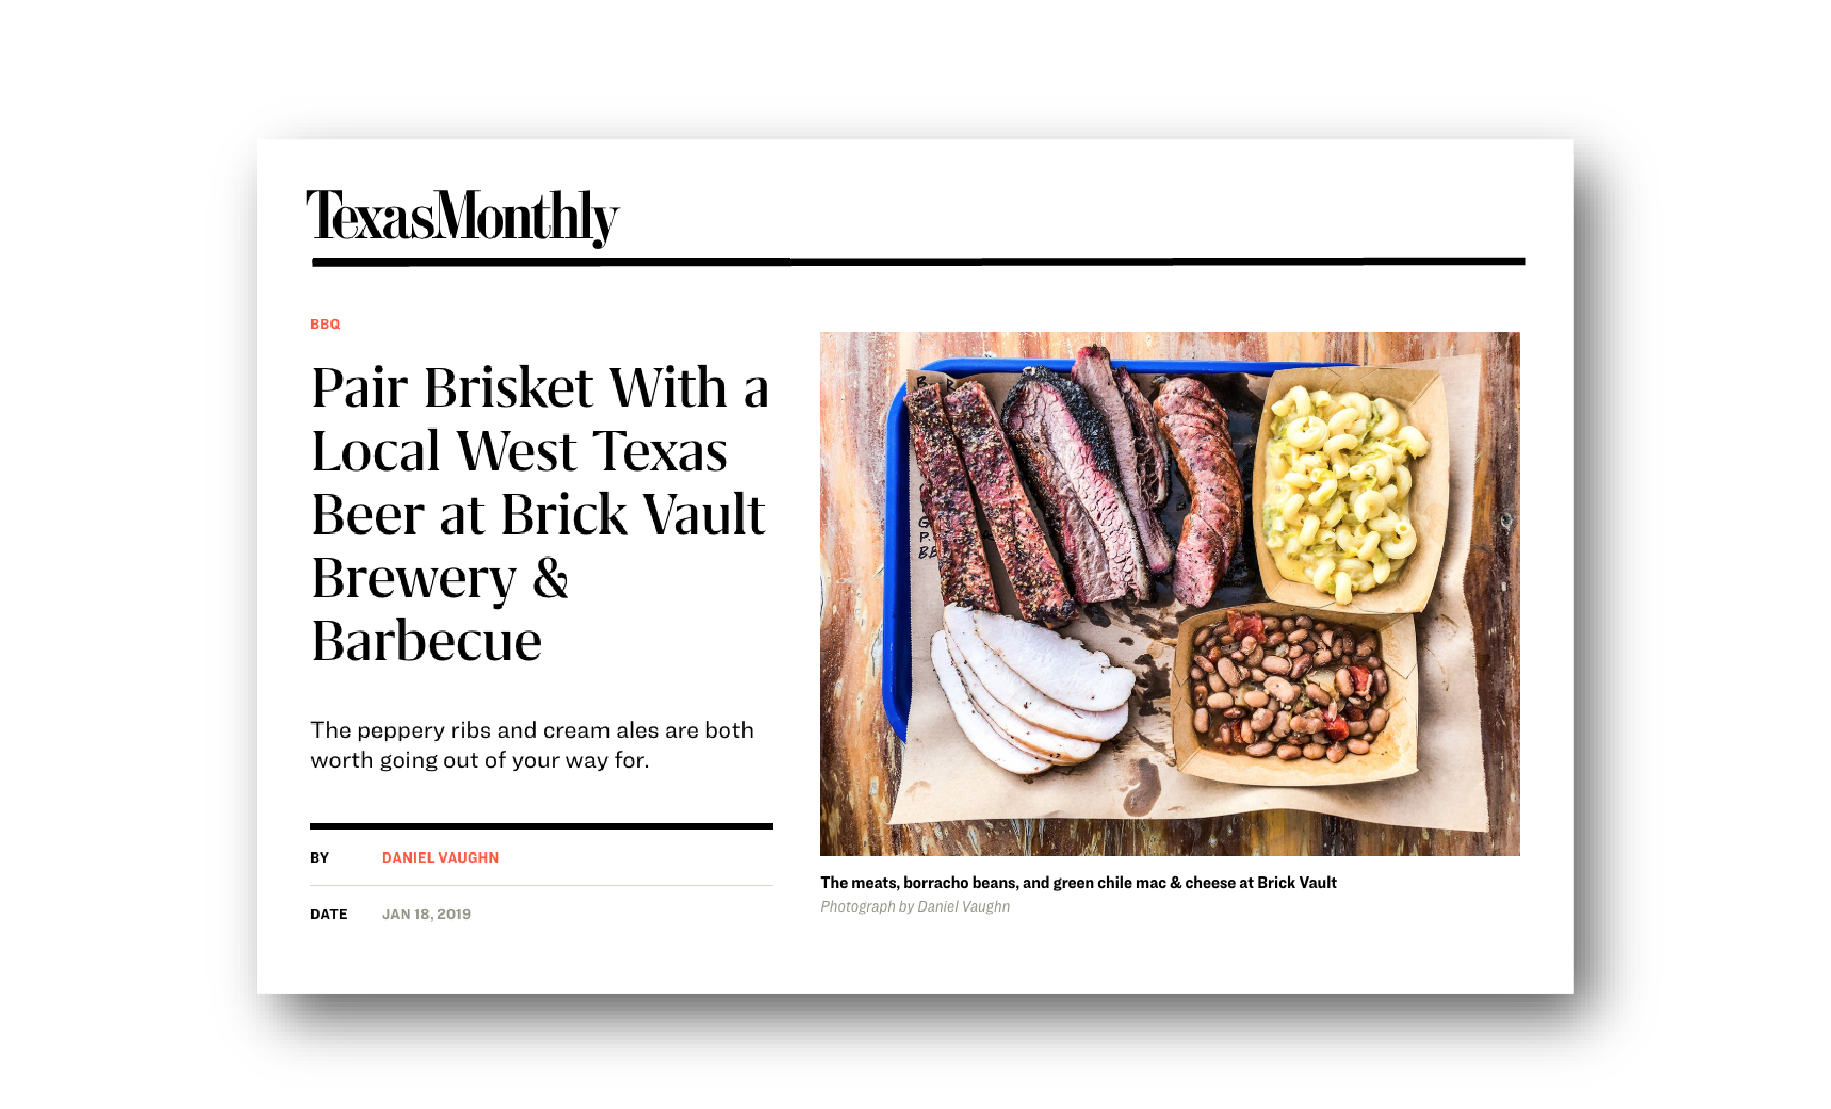 """Brick Vault serves up barbecue and beer worth going out of your way for."" - DANIEL VAUGHN, TEXAS MONTHLY"